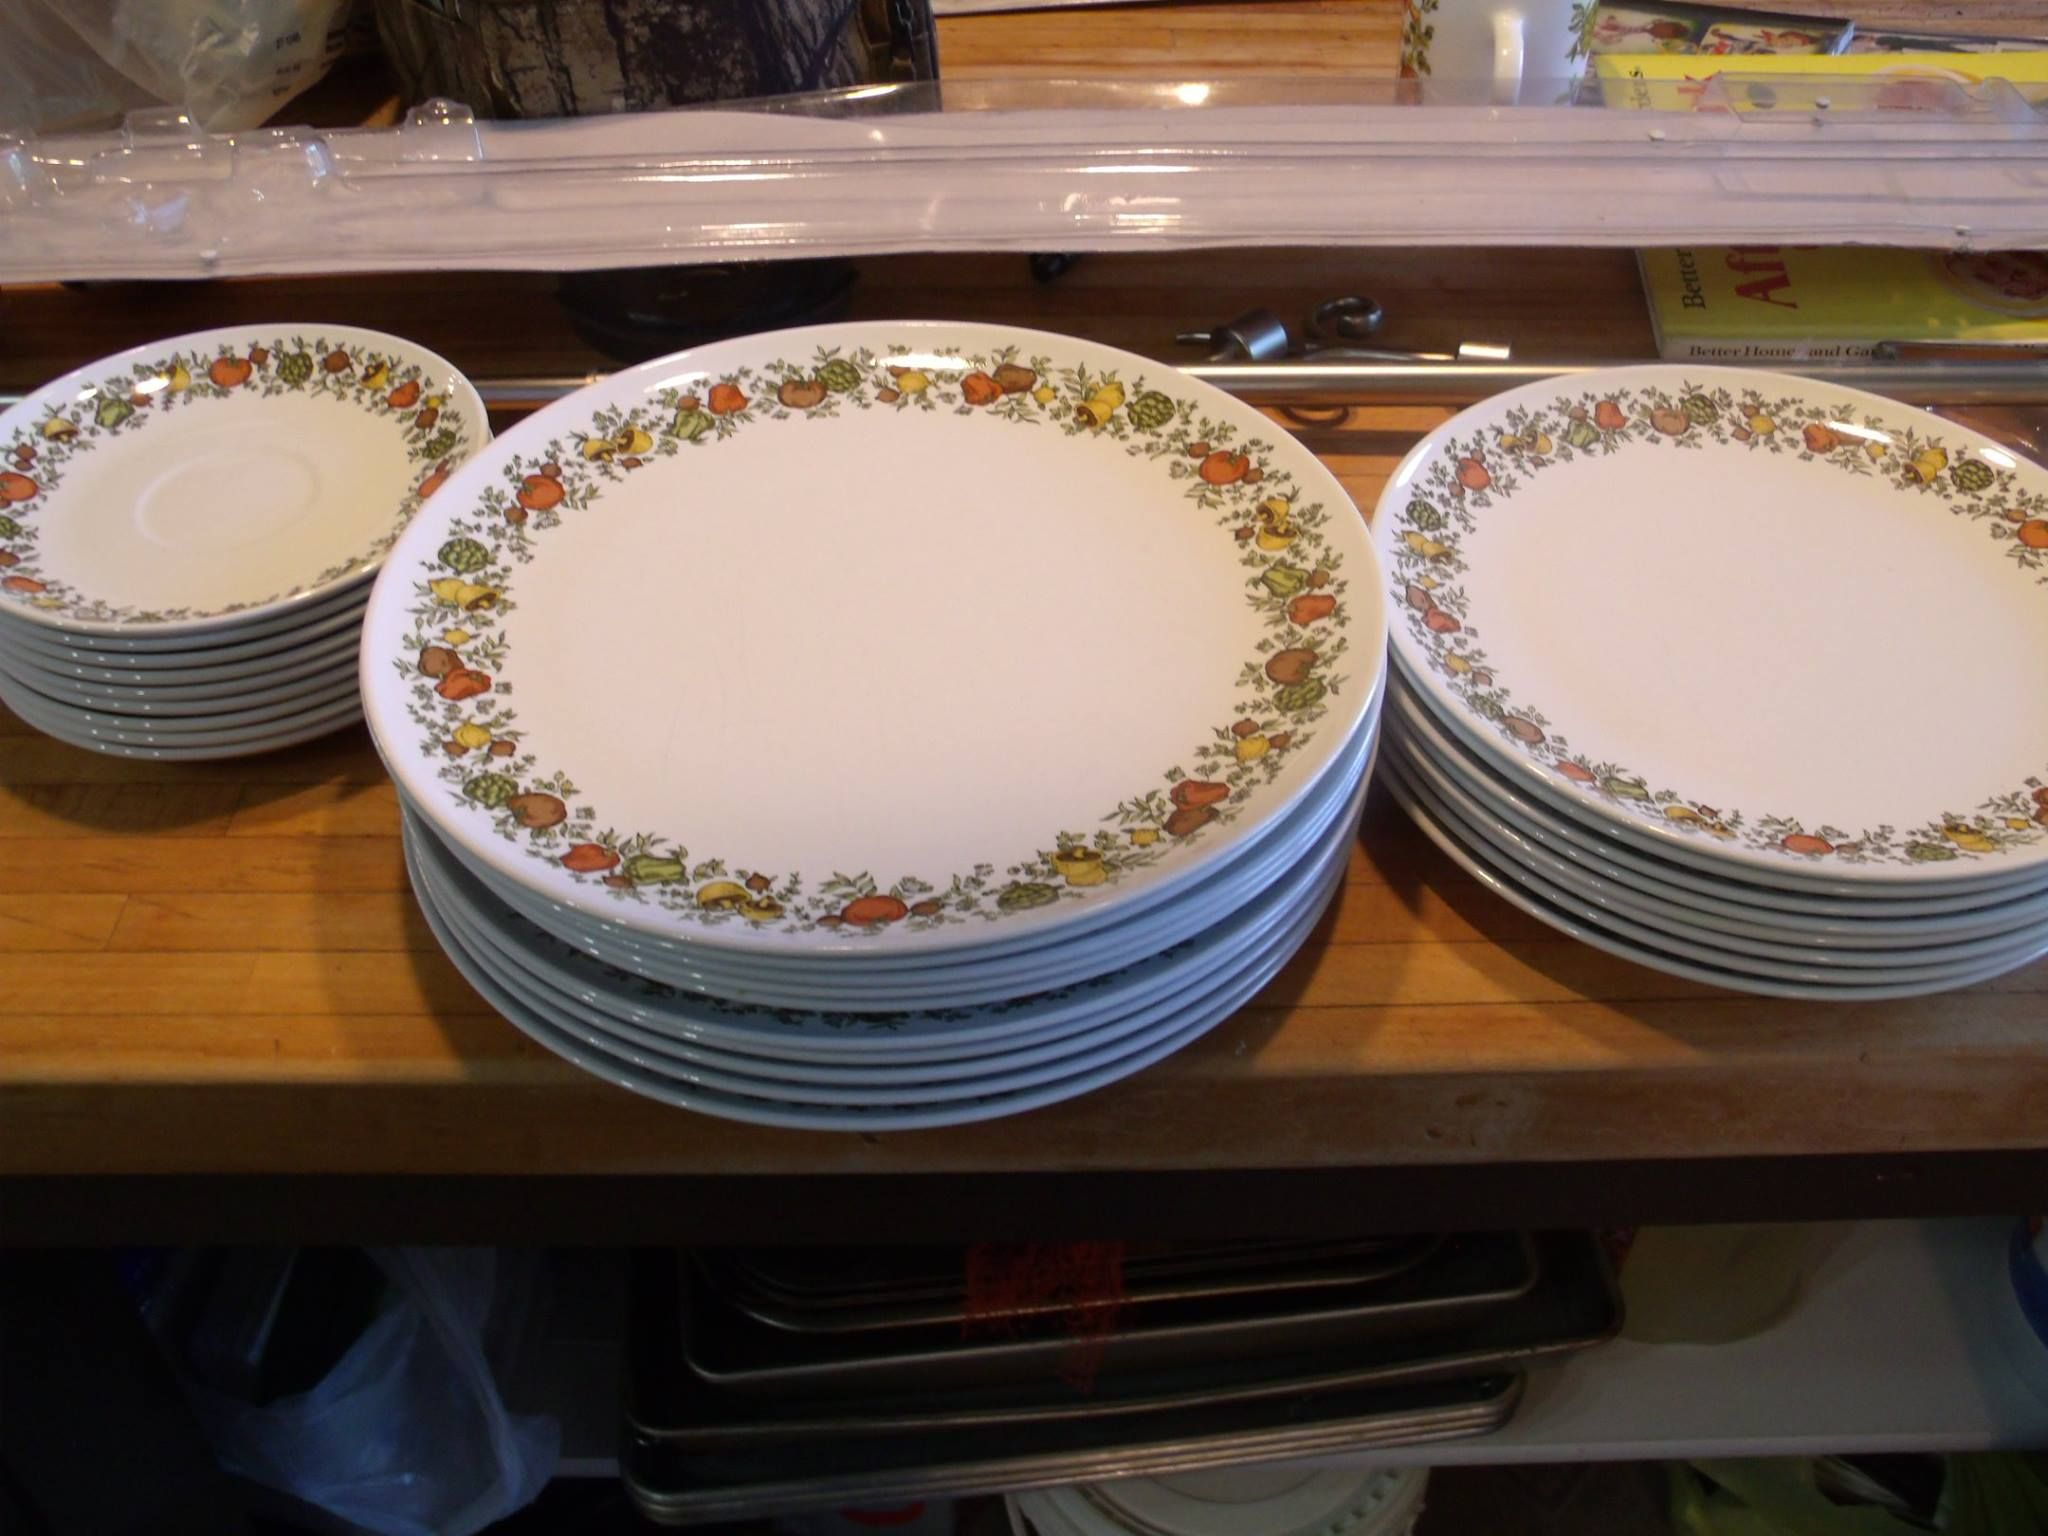 Found Another Set Of Centura By Corning Dishes At A Yard Sale For